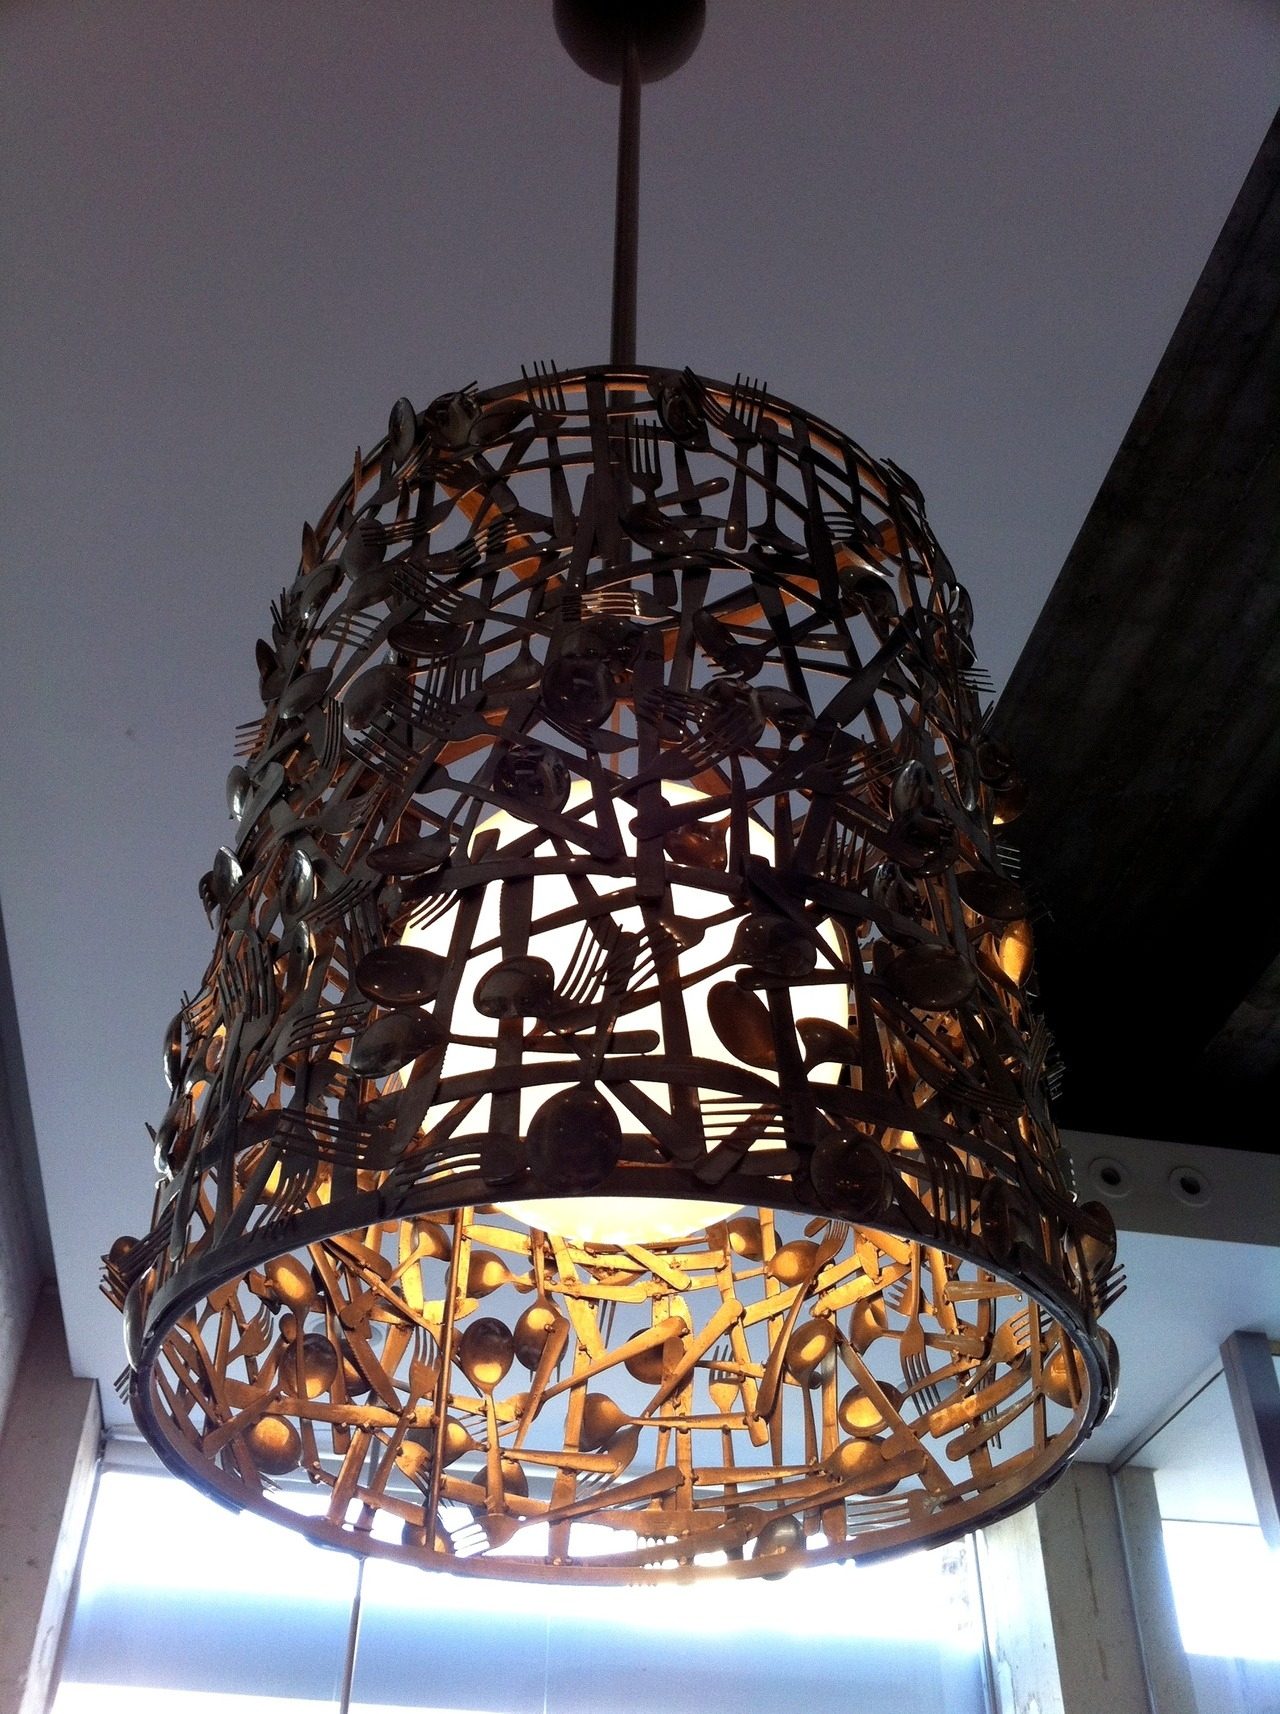 I took this photo at Kitchen 24 in Los Angeles. These lamps are perfect for a restaurant!